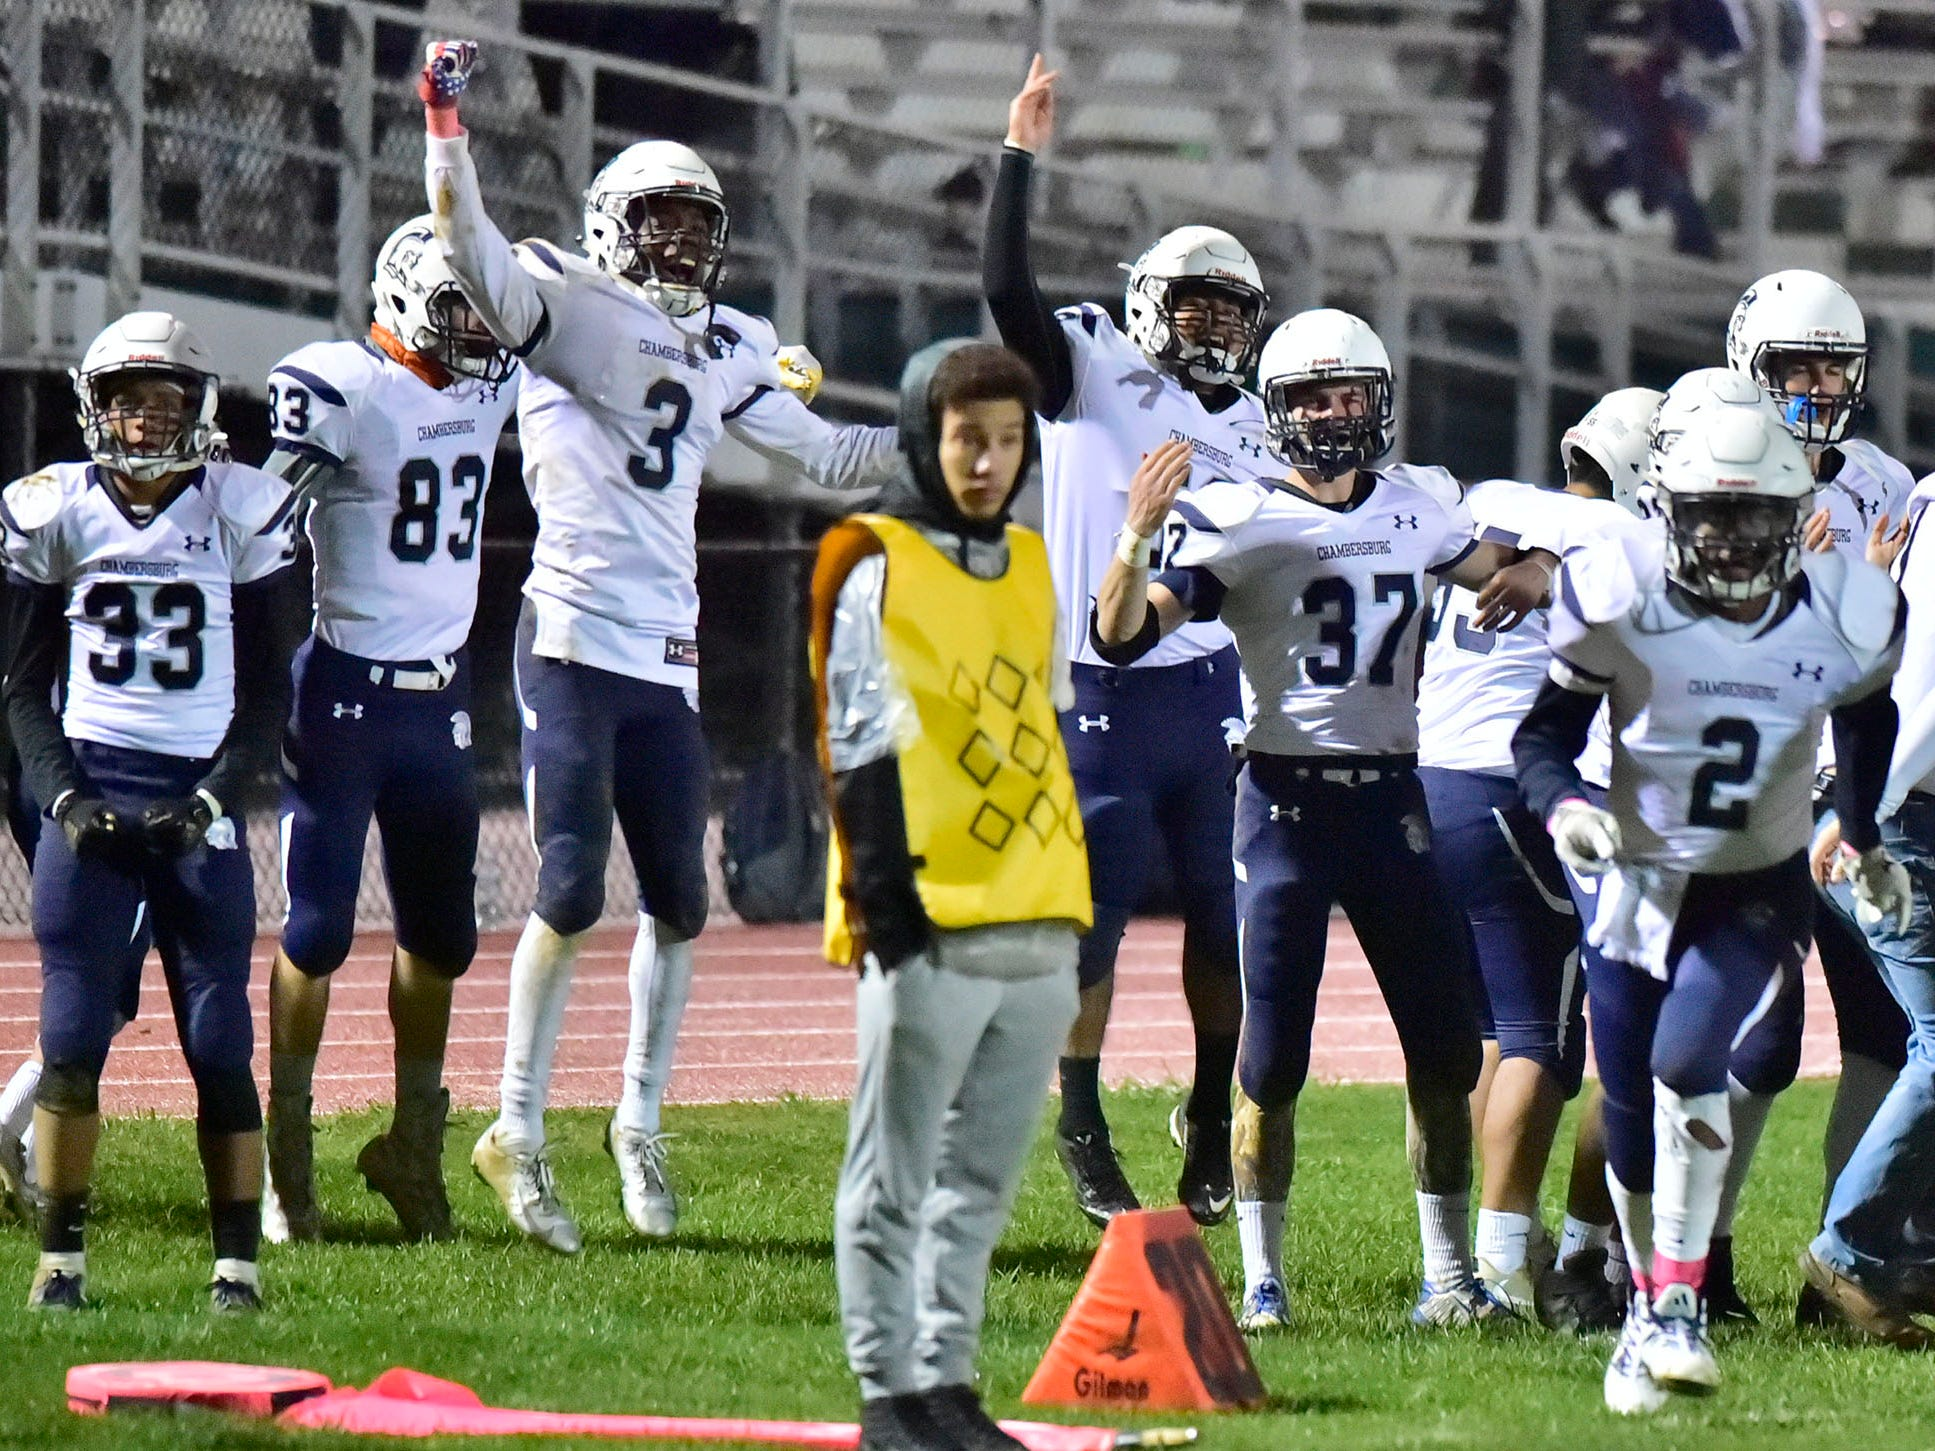 The Chambersburg sideline erupts after a score drive late in the Carlisle game during a 26-20 Trojan victory on Friday, October 26, 2018..